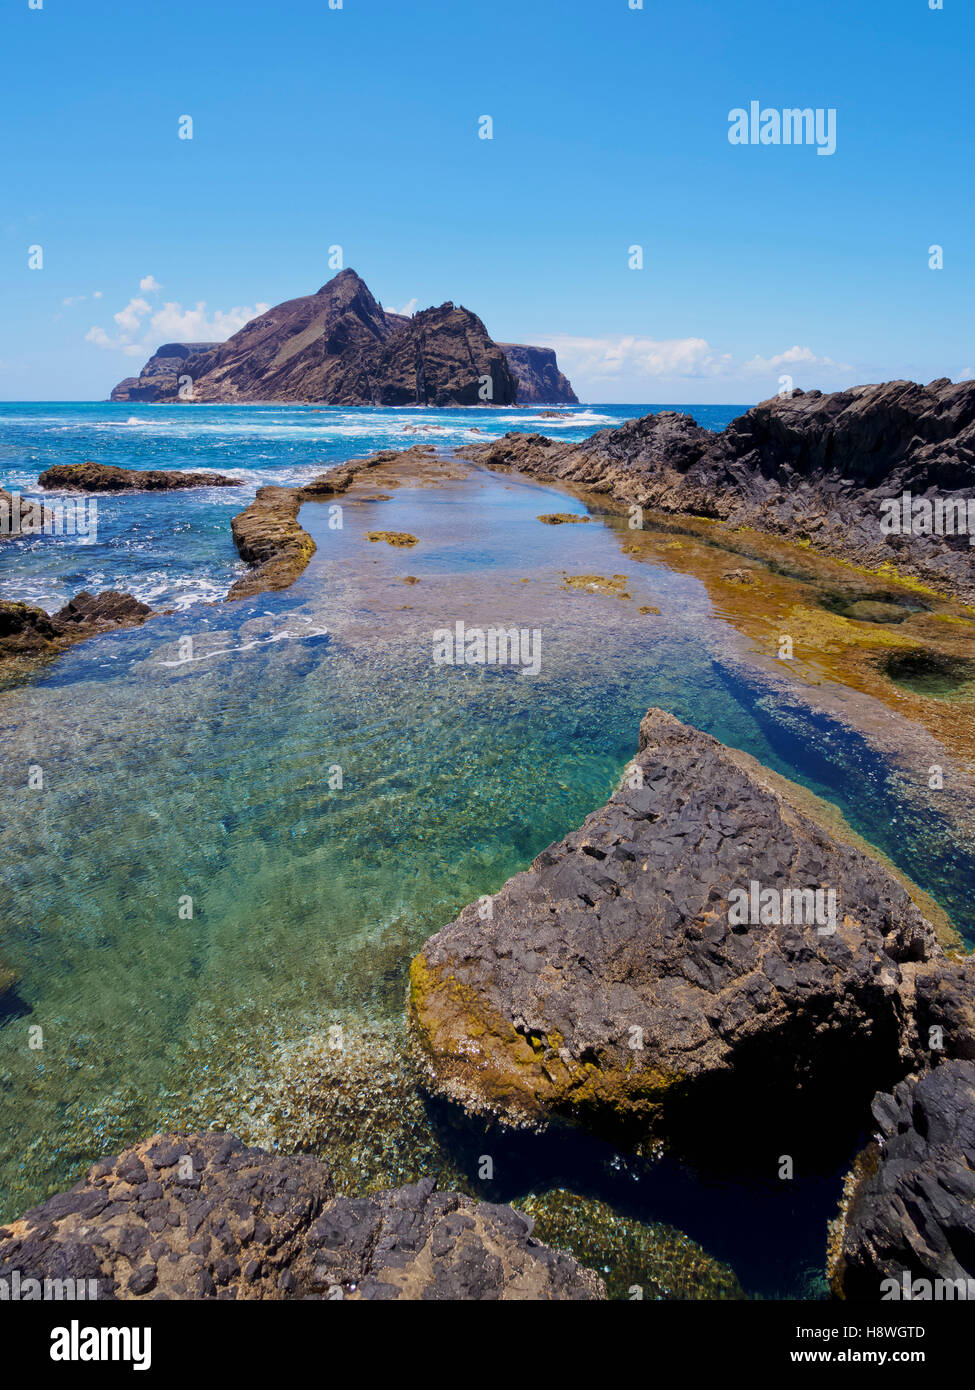 Portugal, Madeira Islands, Porto Santo, Ponta da Calheta, view of the rocky beach of Porto Santo Island. - Stock Image